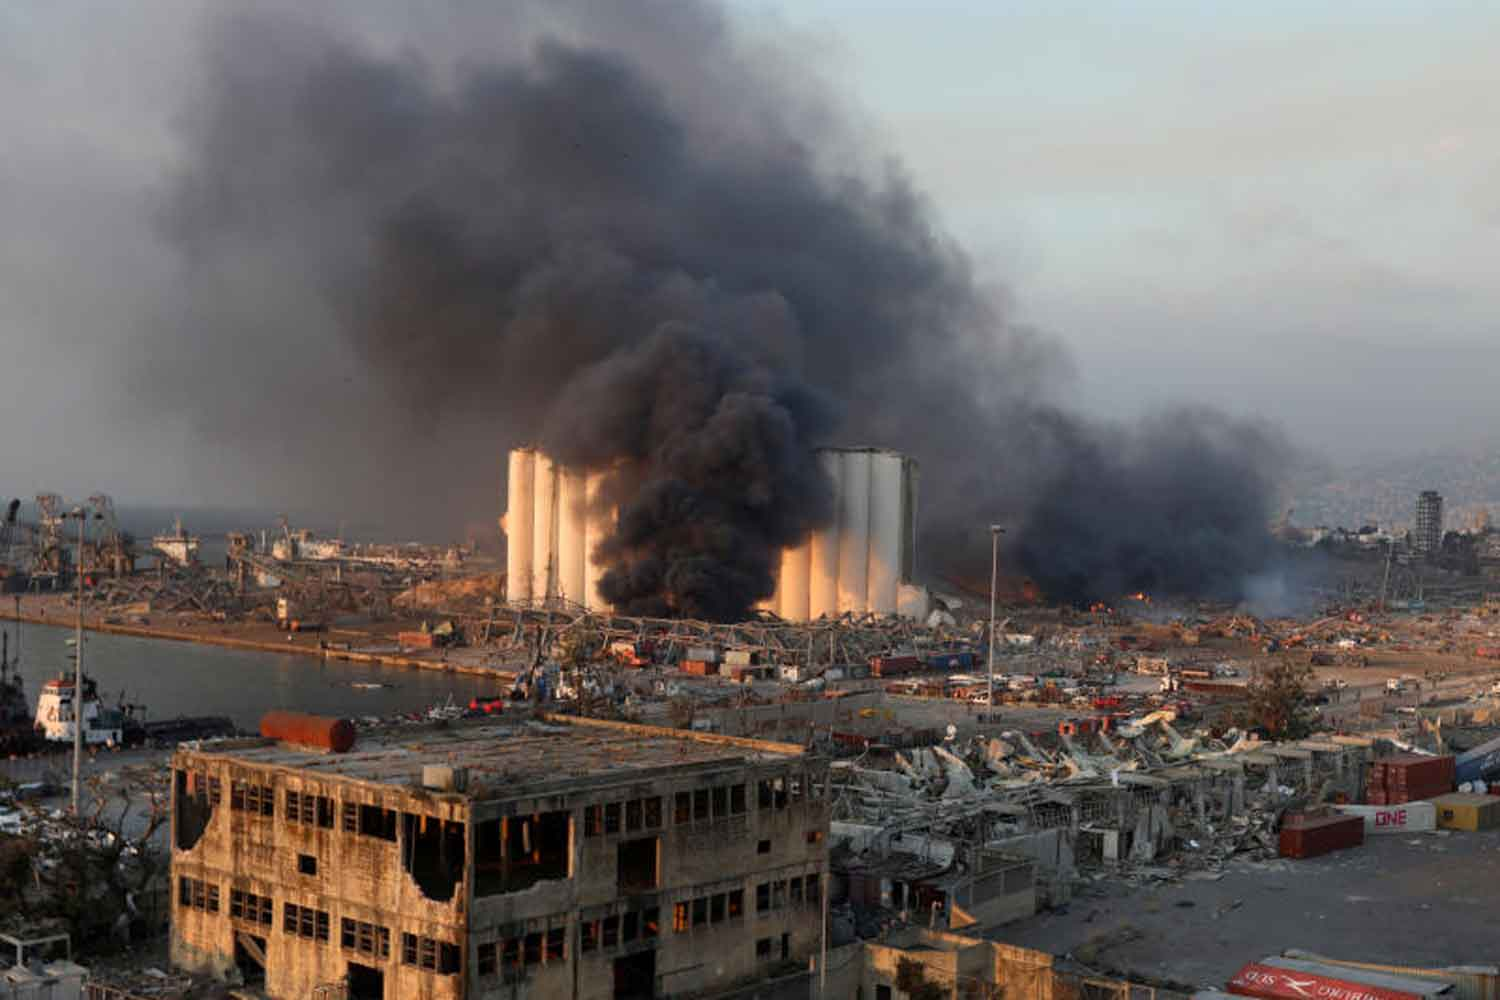 Smoke rises from the site of an explosion in Beirut's port area, Lebanon August 4, 2020. (Reuters photo)